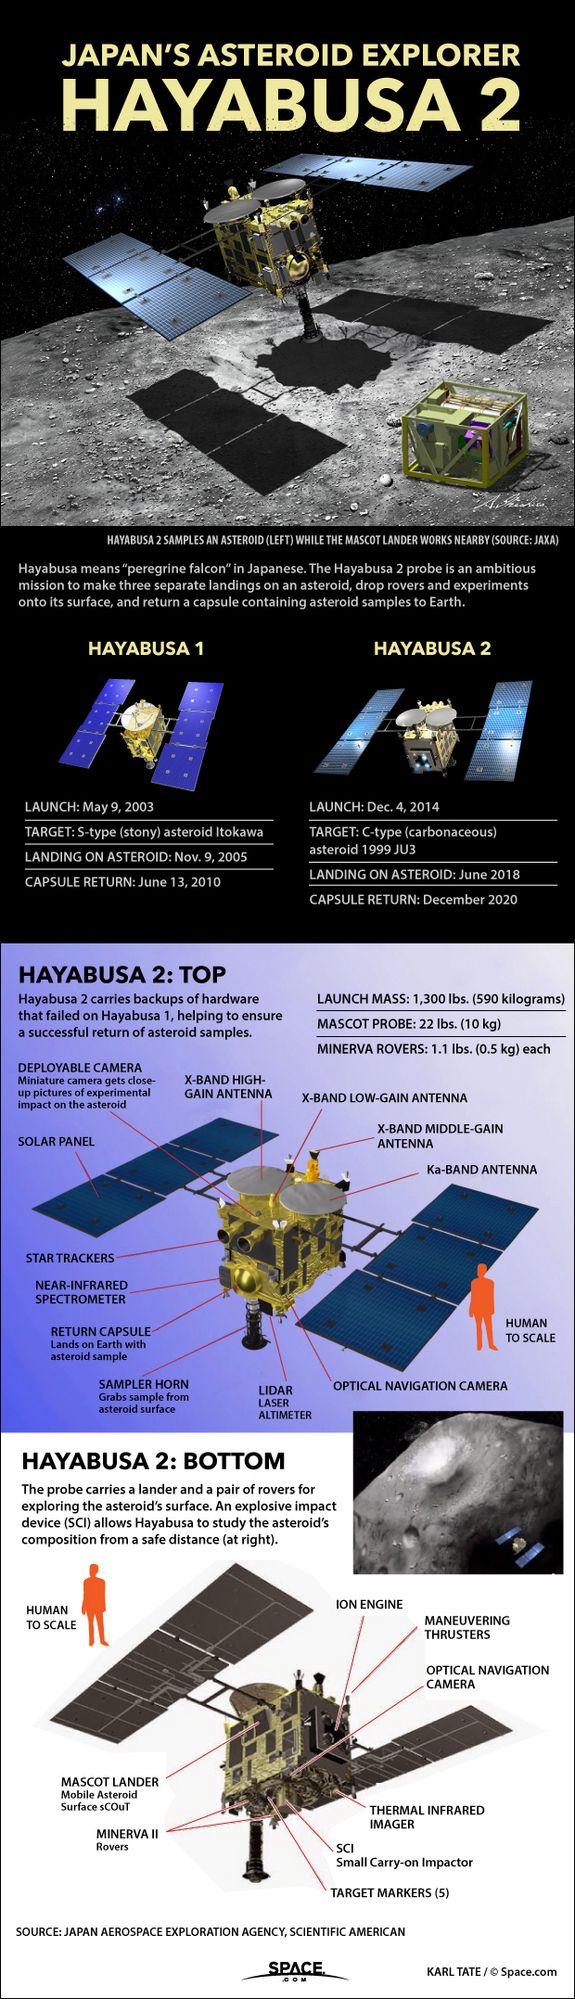 Diagrams show Hayabusa 2 asteroid probe.